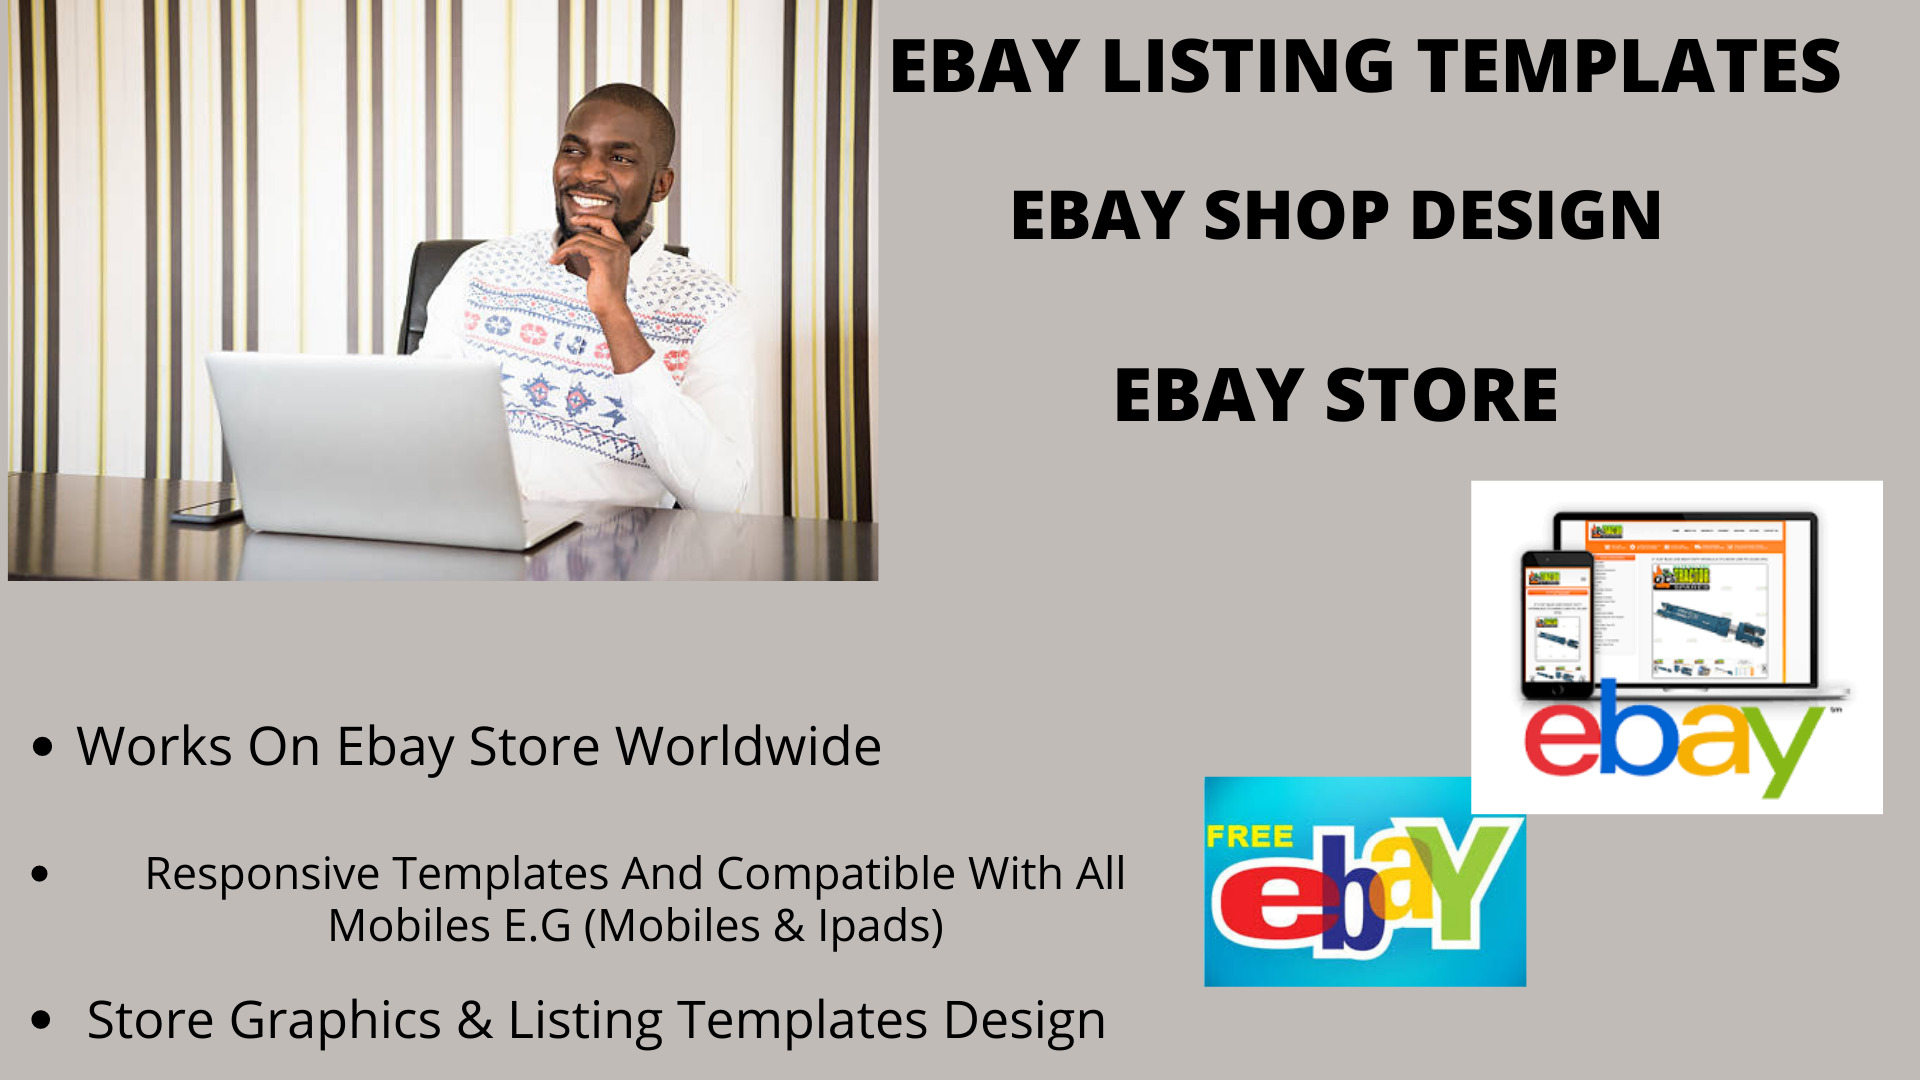 I will design ebay store, listing template, ebay shop design, FiverrBox